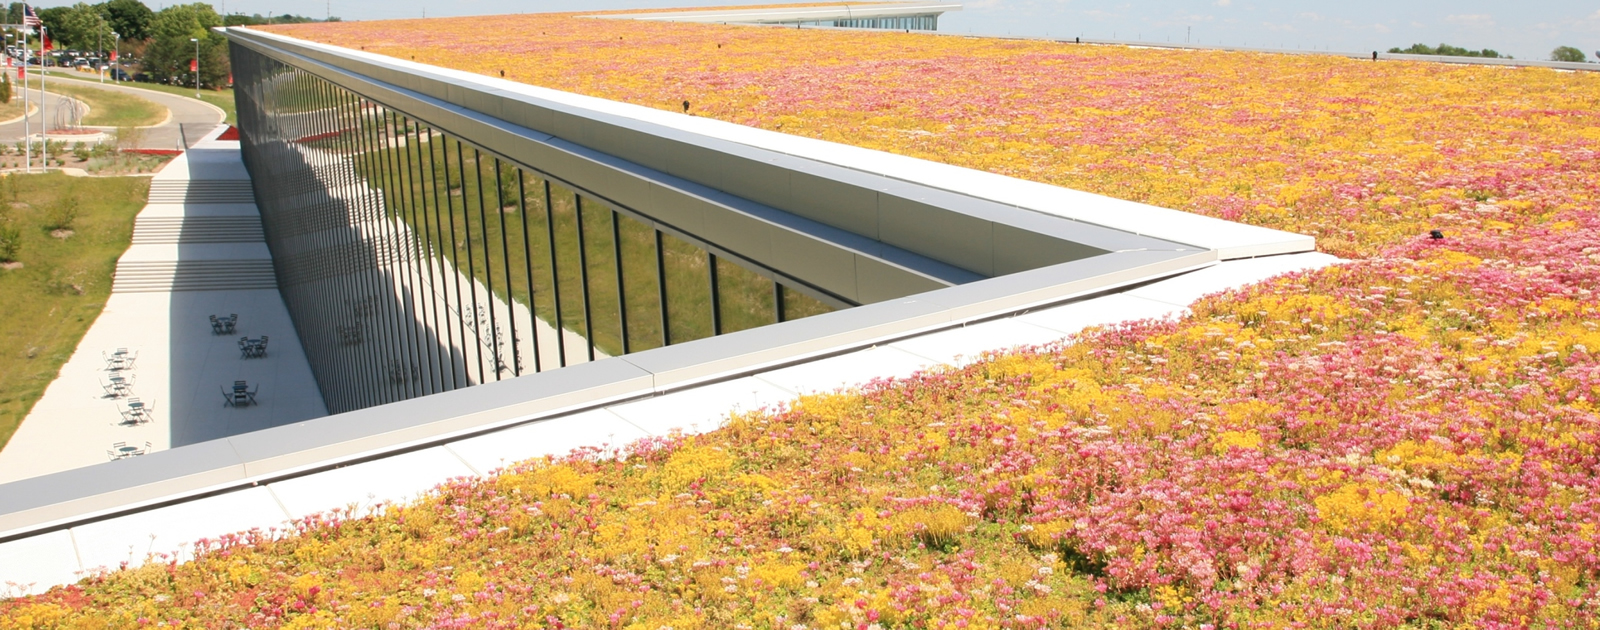 green-roof-system-stock